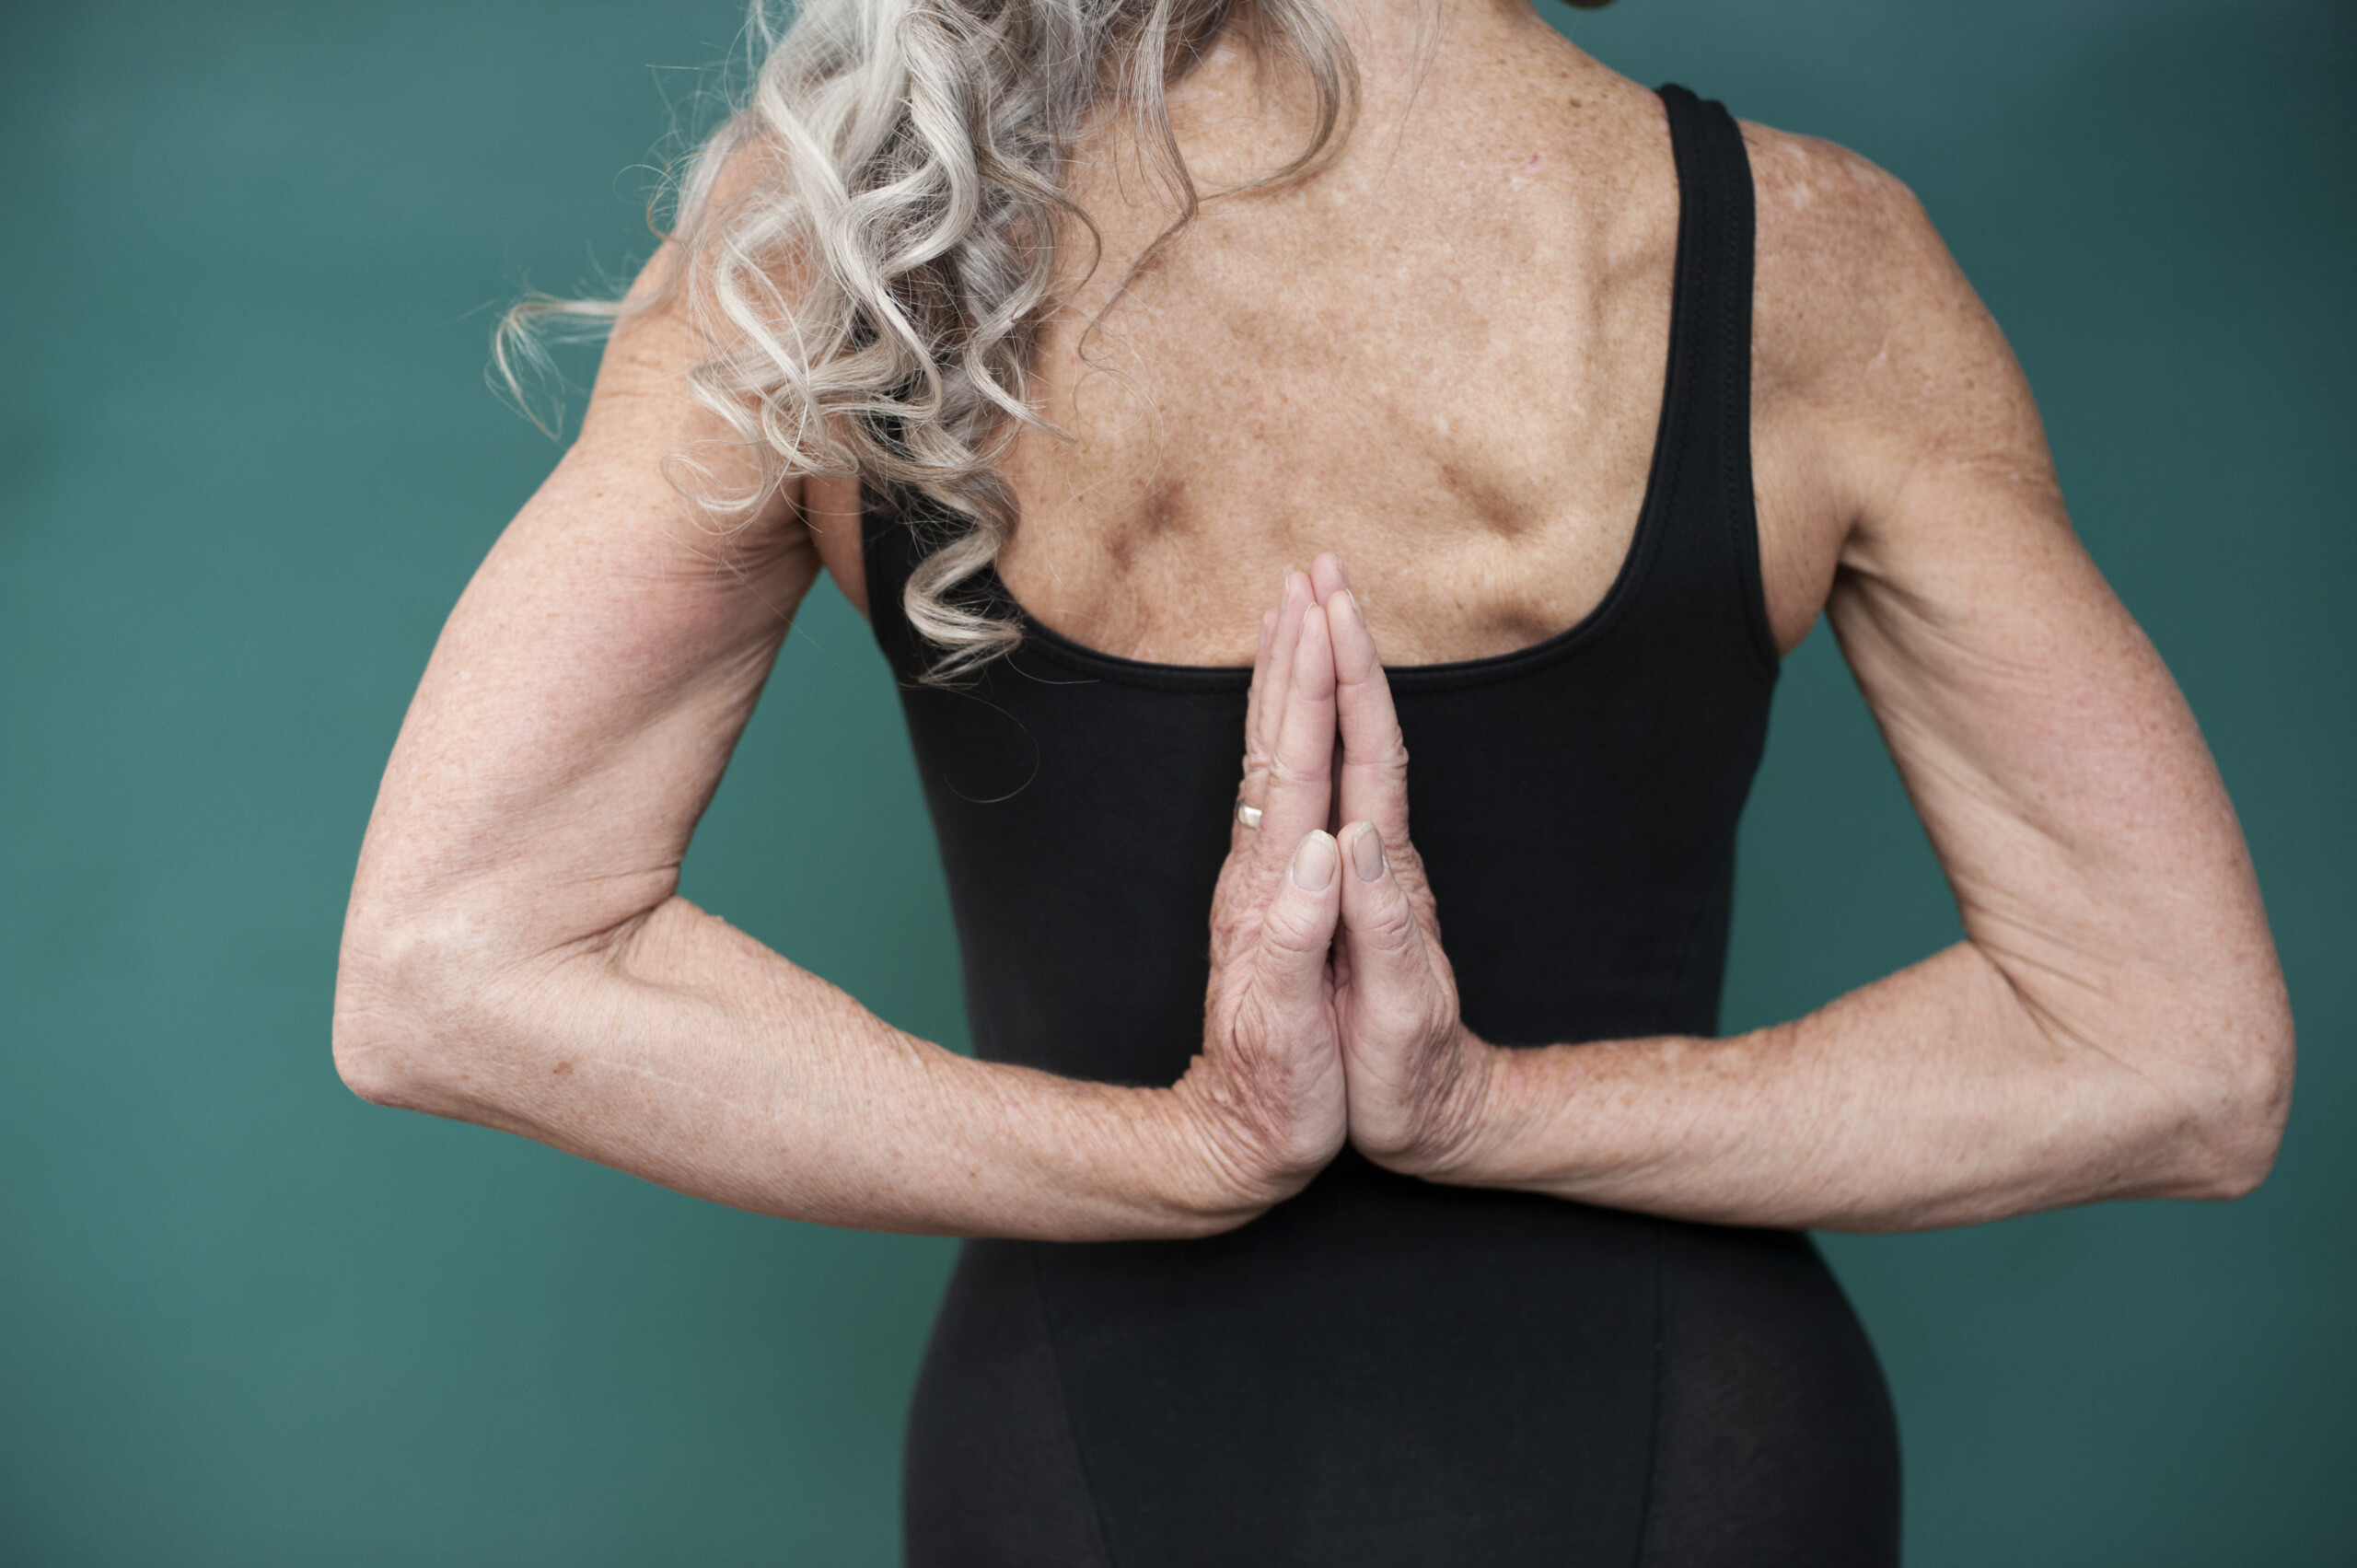 Postmenopausal Women: Fast Resting Pulse Linked to Heart Attacks